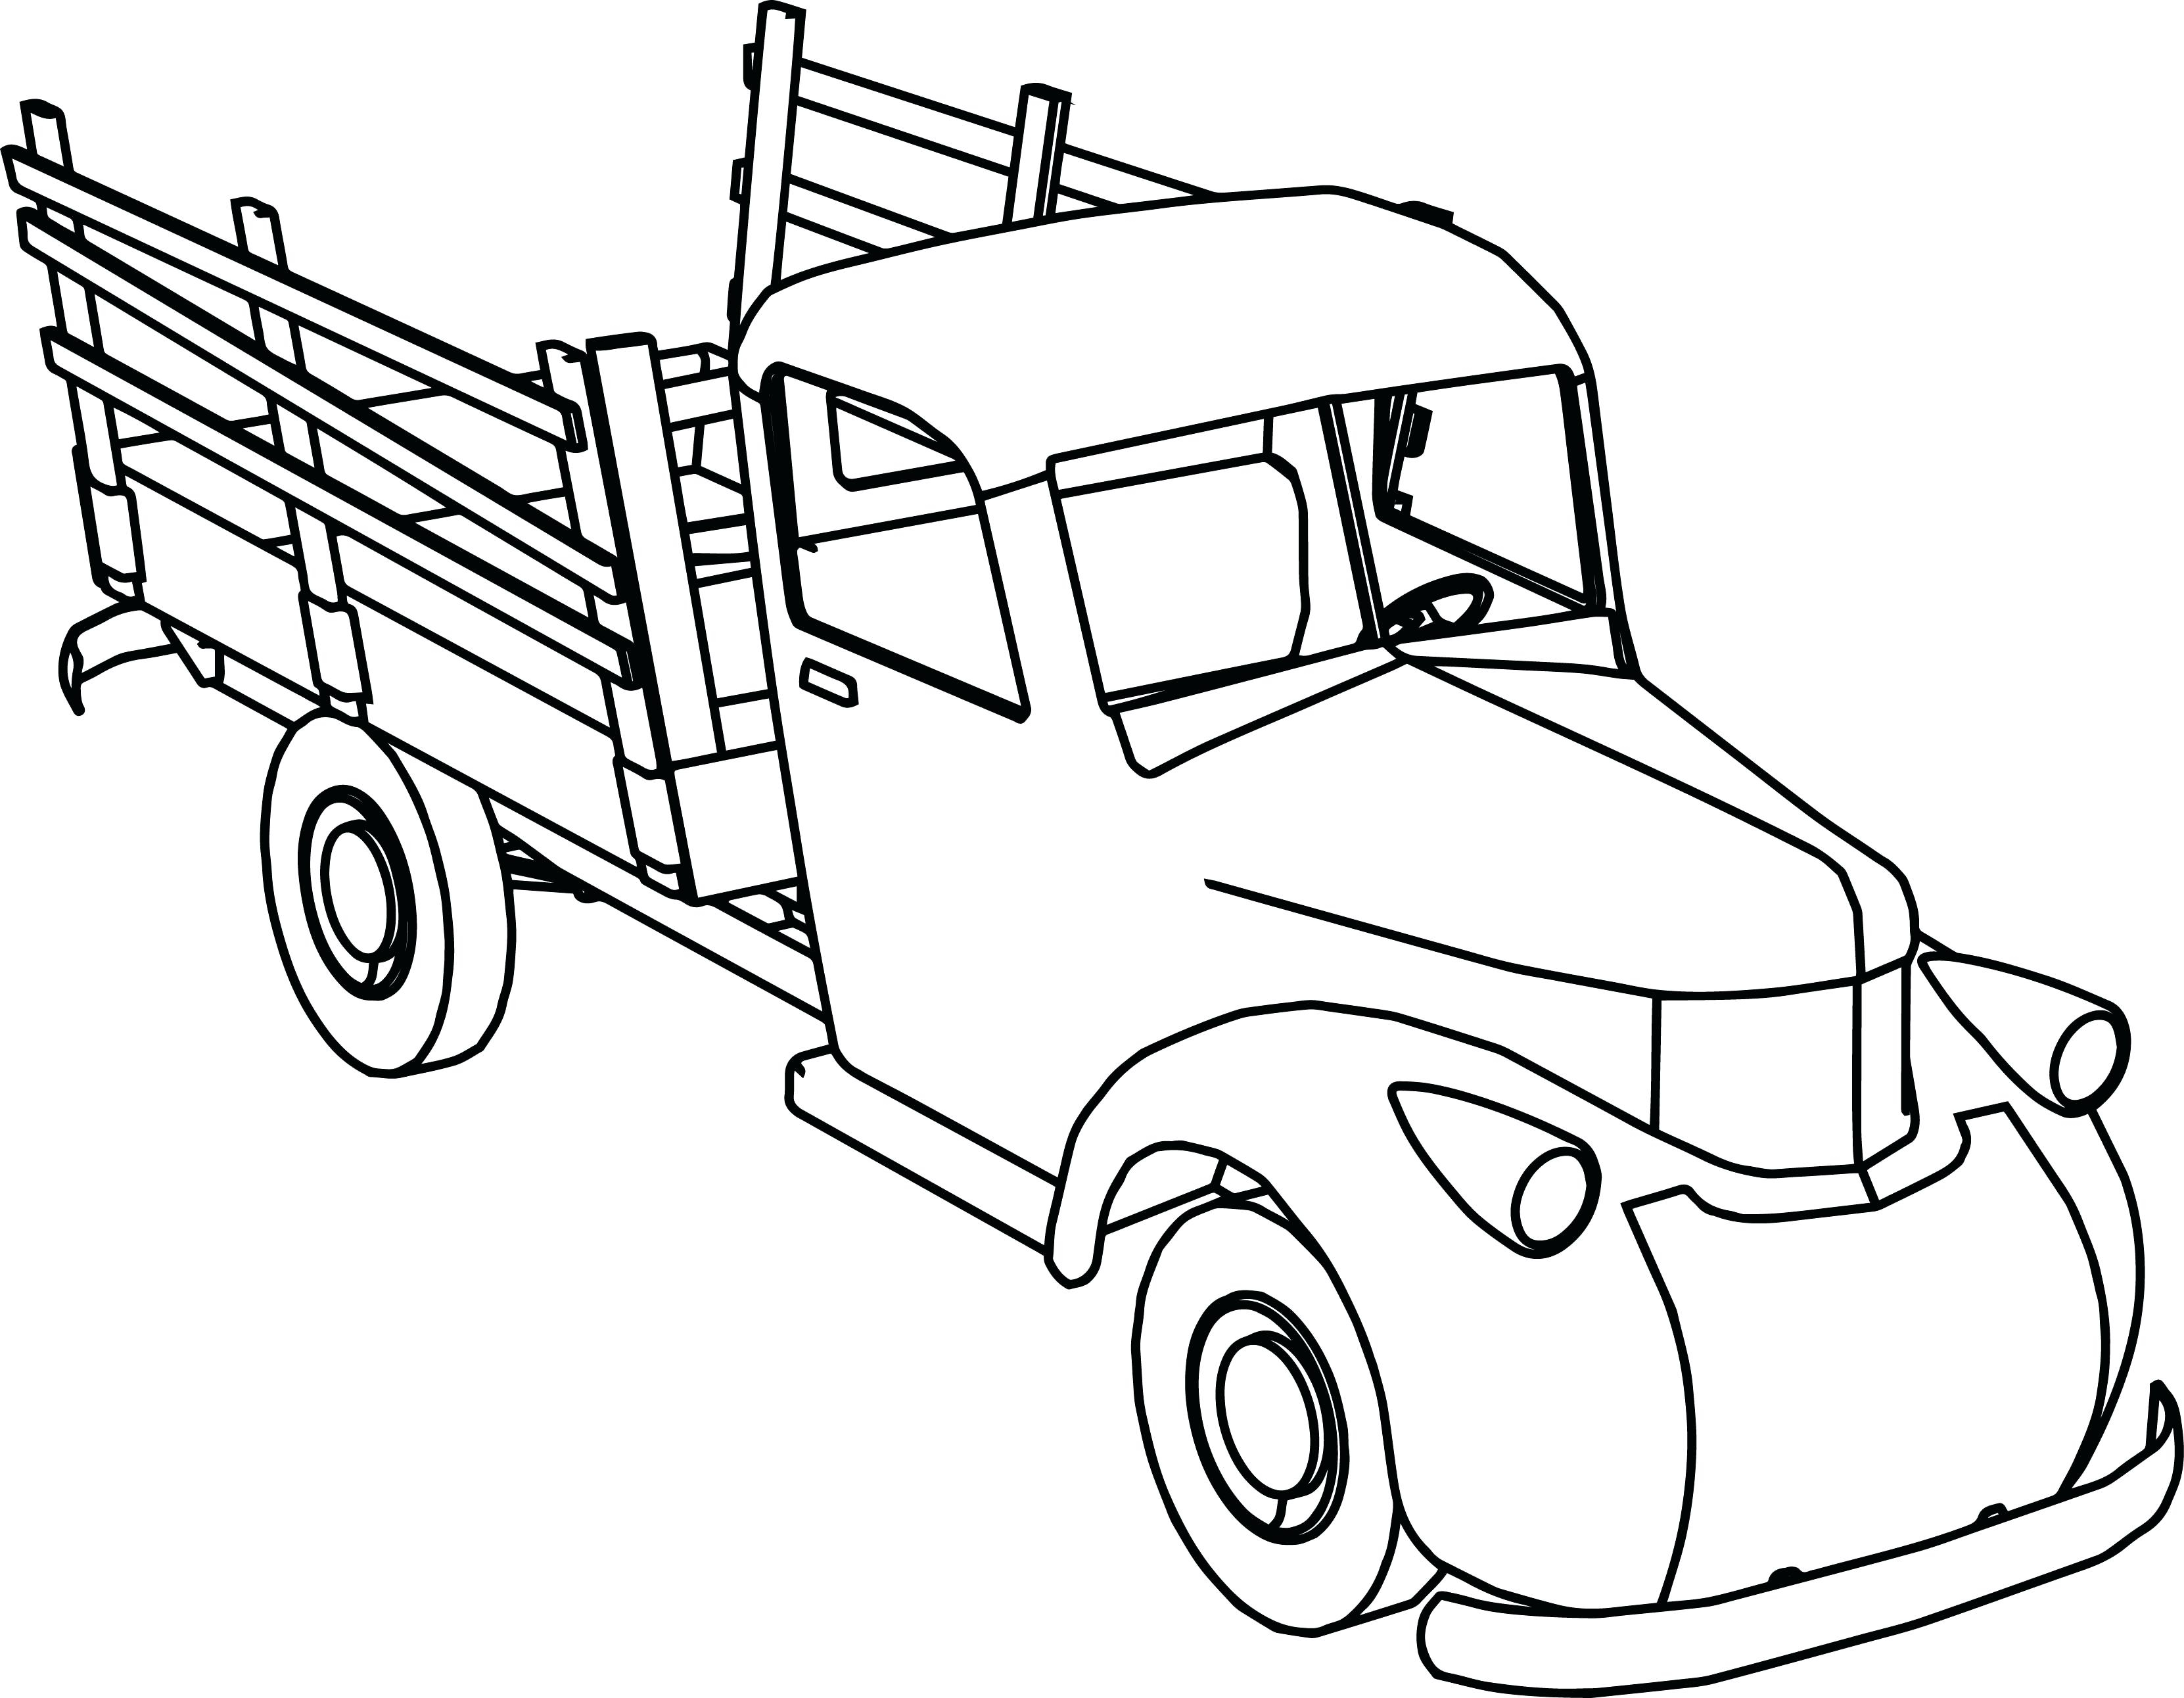 ford truck coloring pages Collection-Ford F250 Coloring Pages Decoration Truck Coloring Pages Pick Up ford F150 Coloring Page ford 8-m